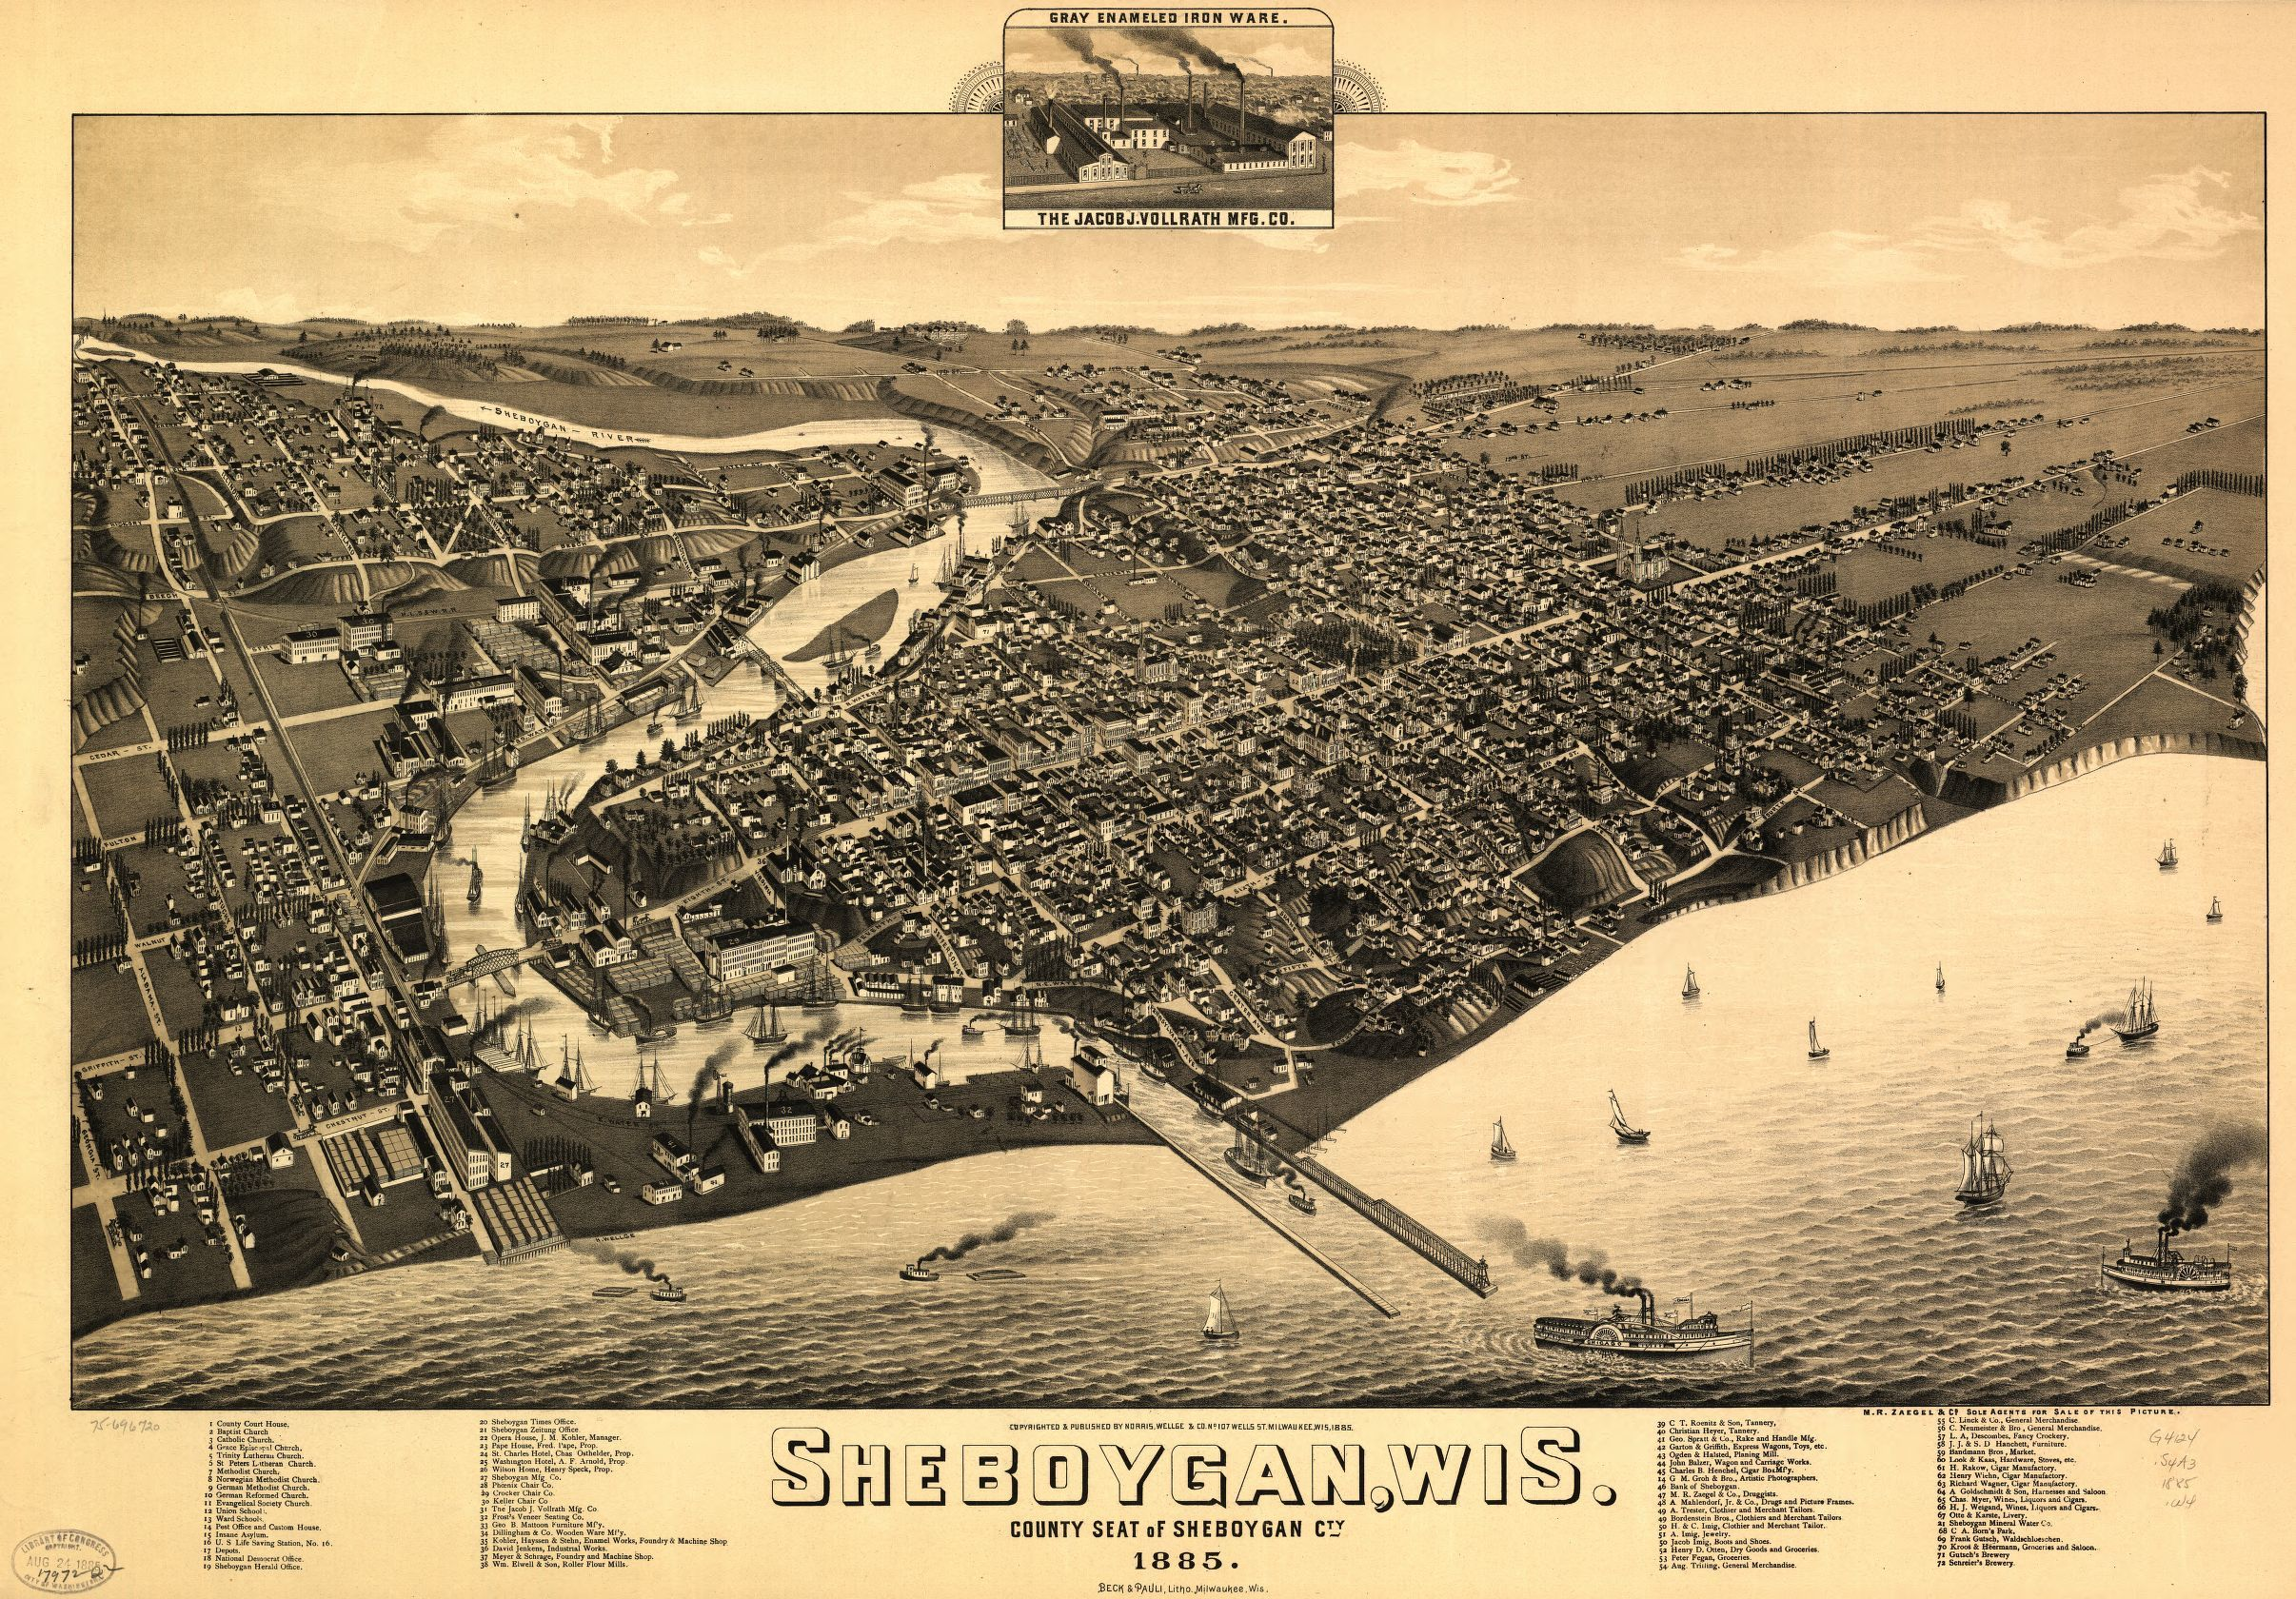 This map illustrates the city of Sheboygan as it appeared in 1885. Begun as a small village in 1836, the city grew to become the county seat of Sheboygan County.